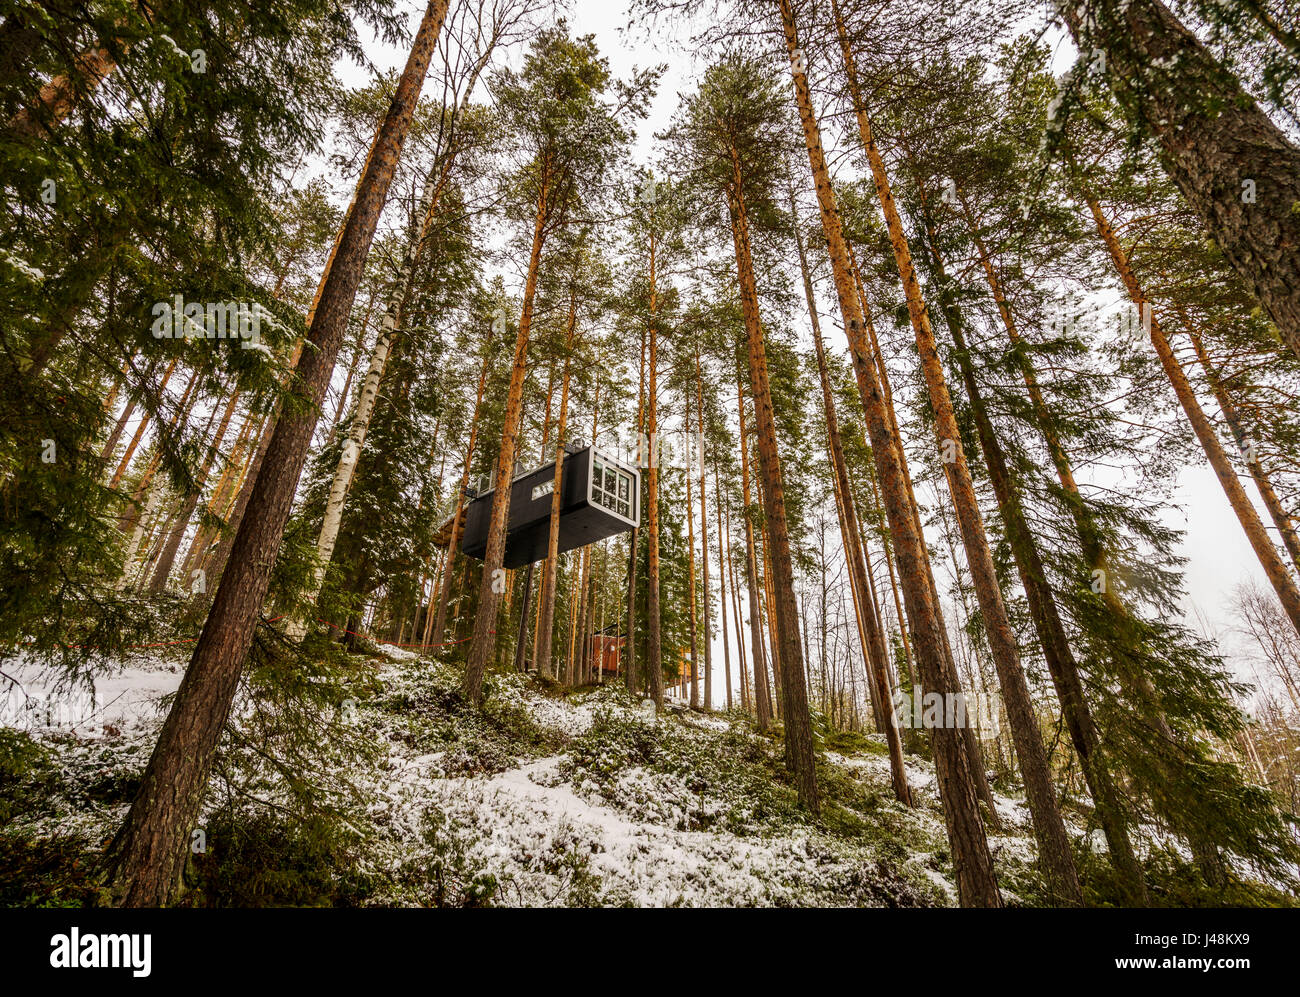 Accommodation in the woods, known as The Cabin at the Tree Hotel in Lapland, Sweden - Stock Image